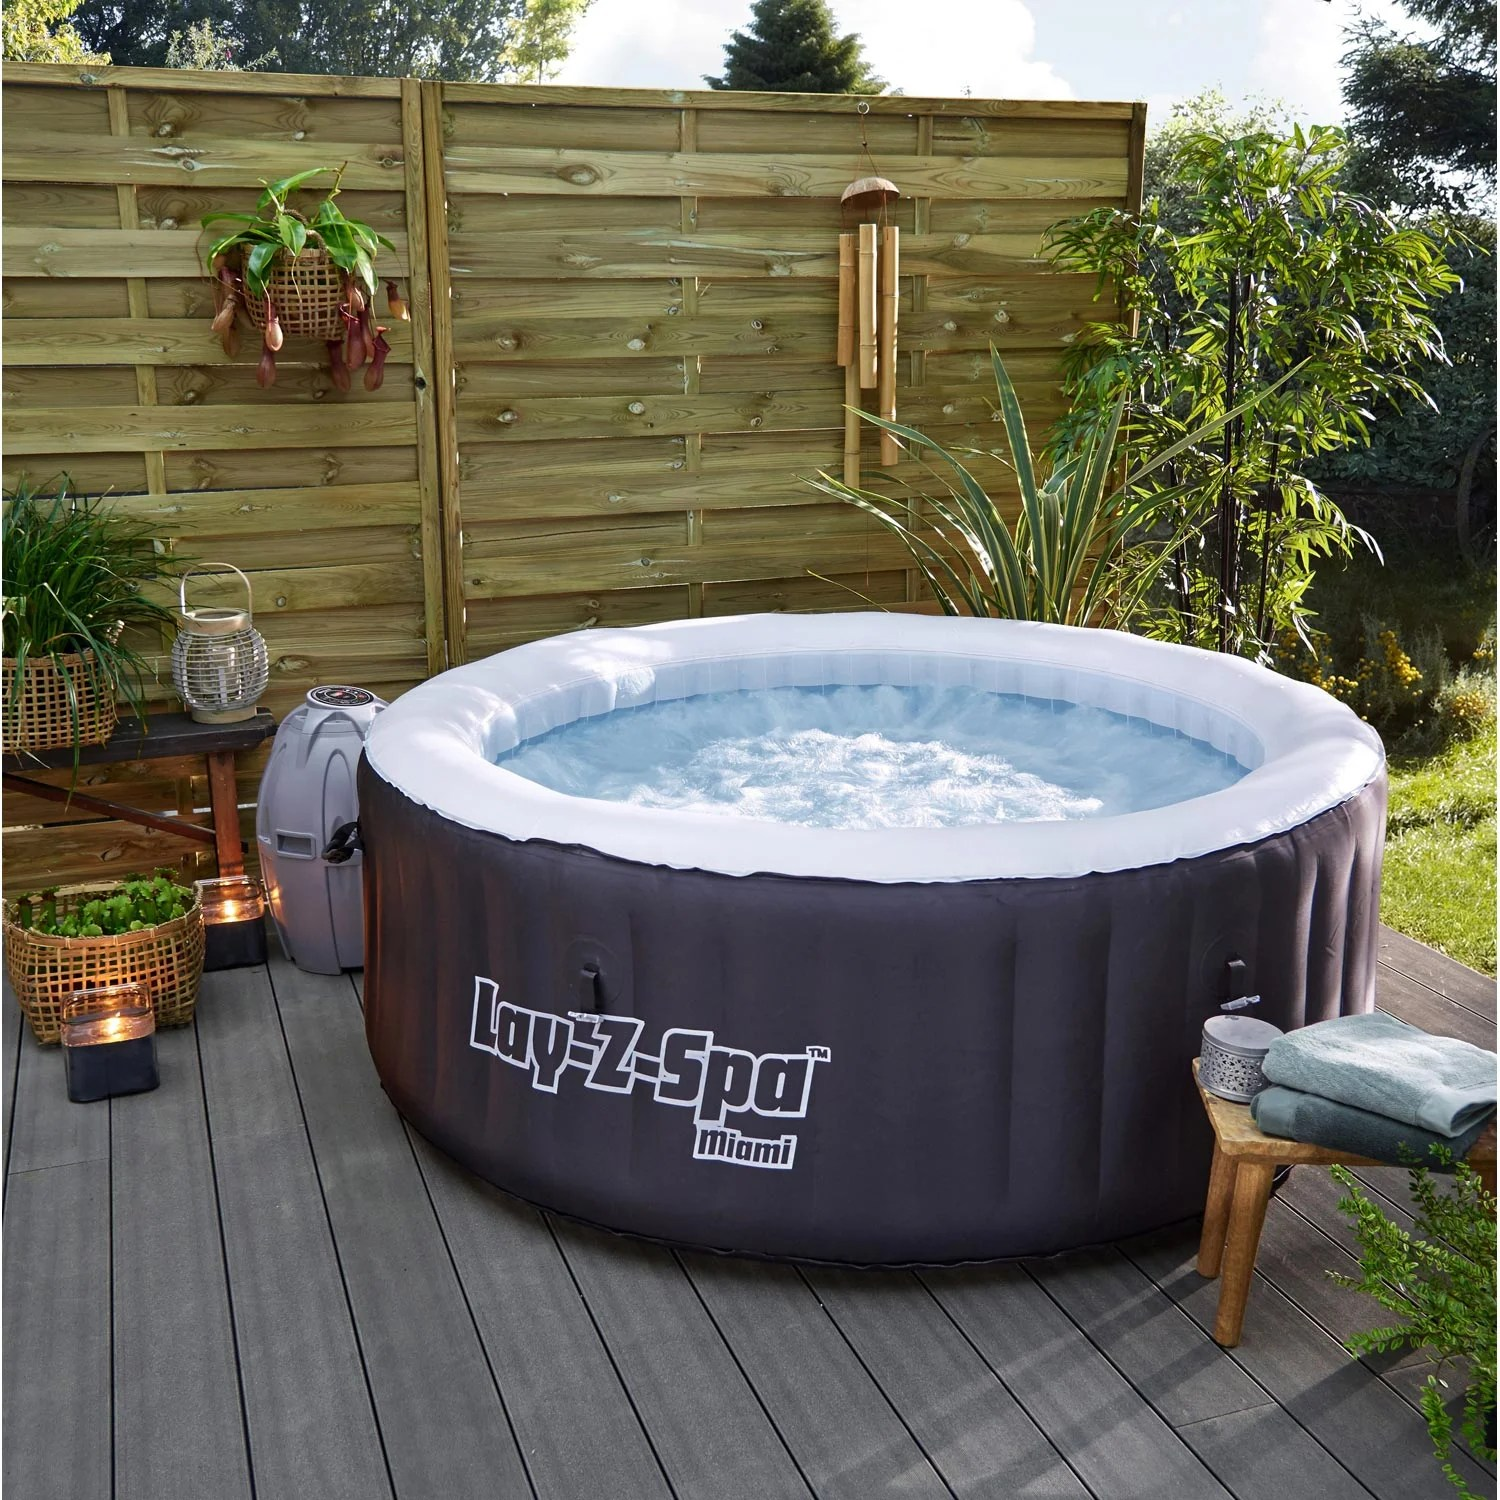 Spa Et Jacuzzi Exterieur Spa Gonflable Bestway Miami Rond 4 Places Assises Leroy